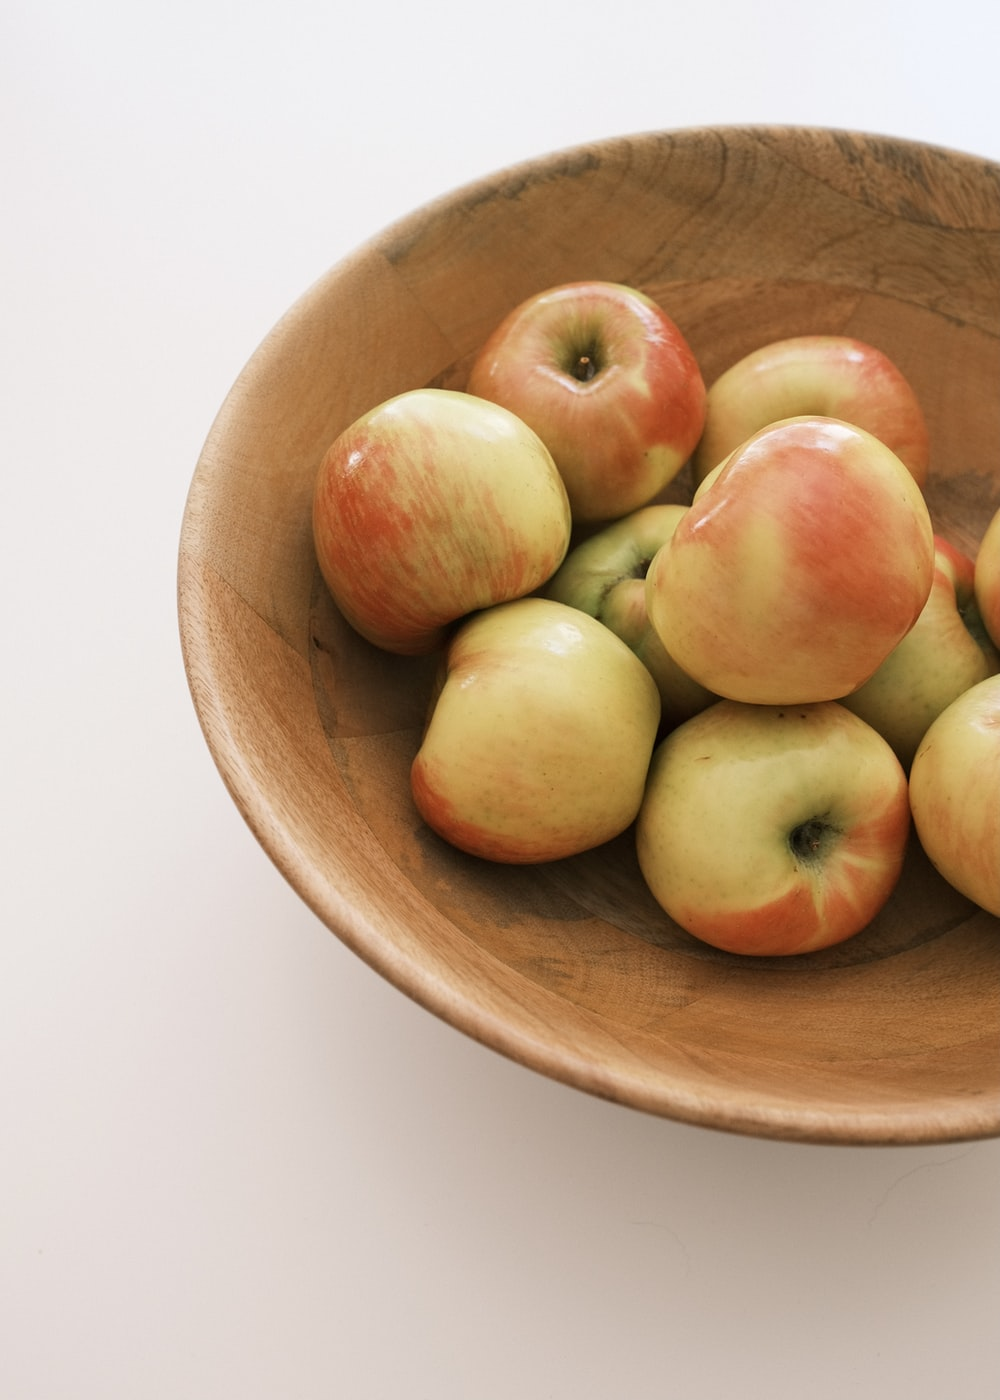 green and red apples on brown wooden bowl